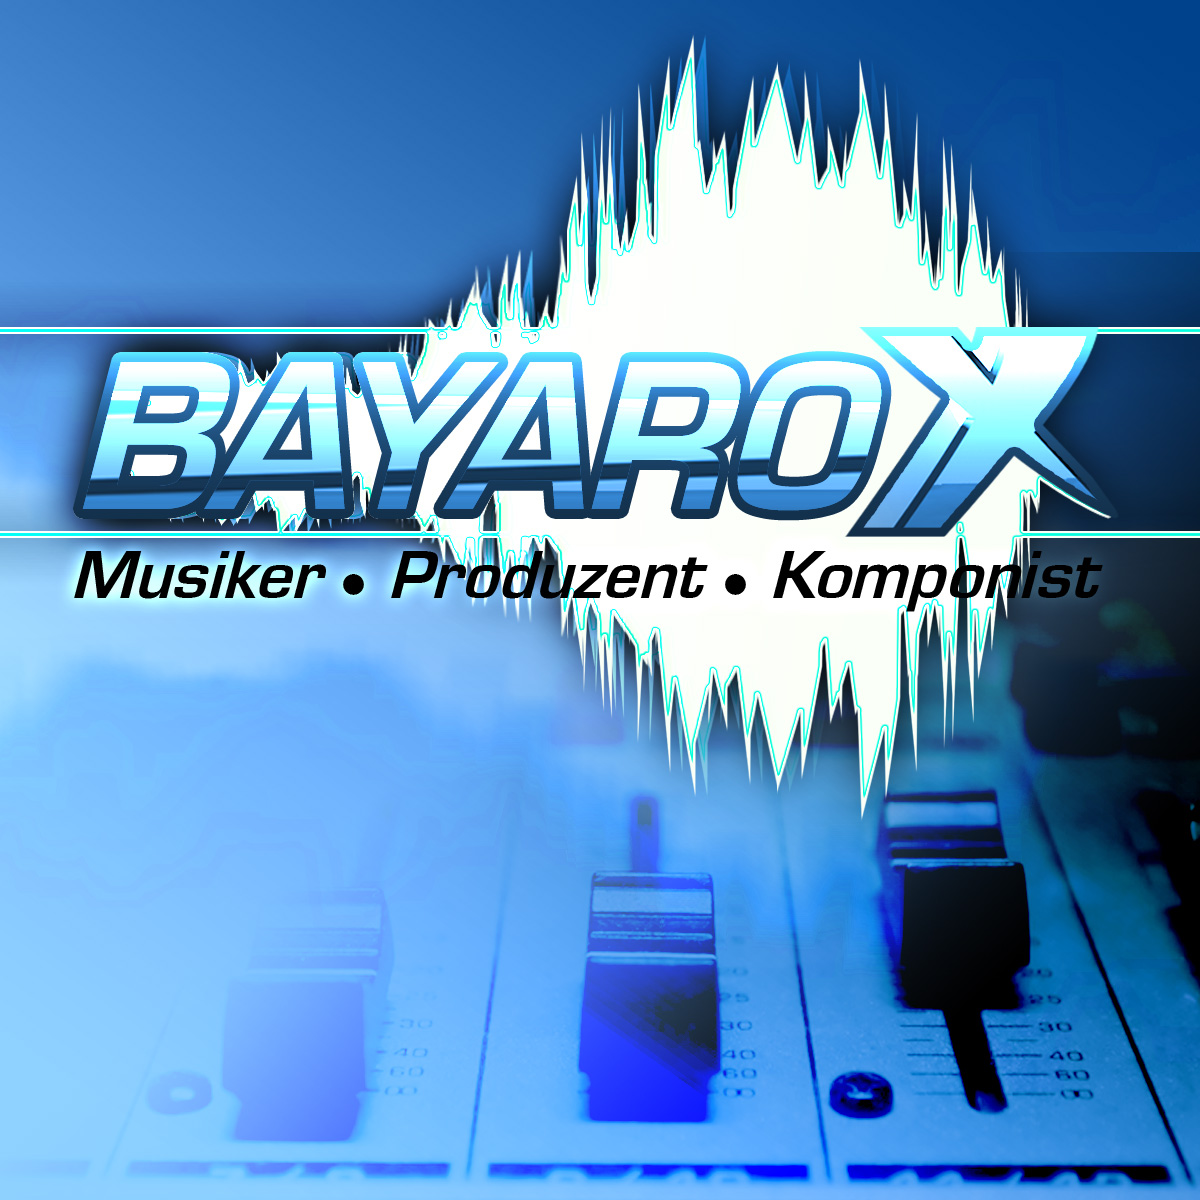 CD-Cover_Bayarox.jpg